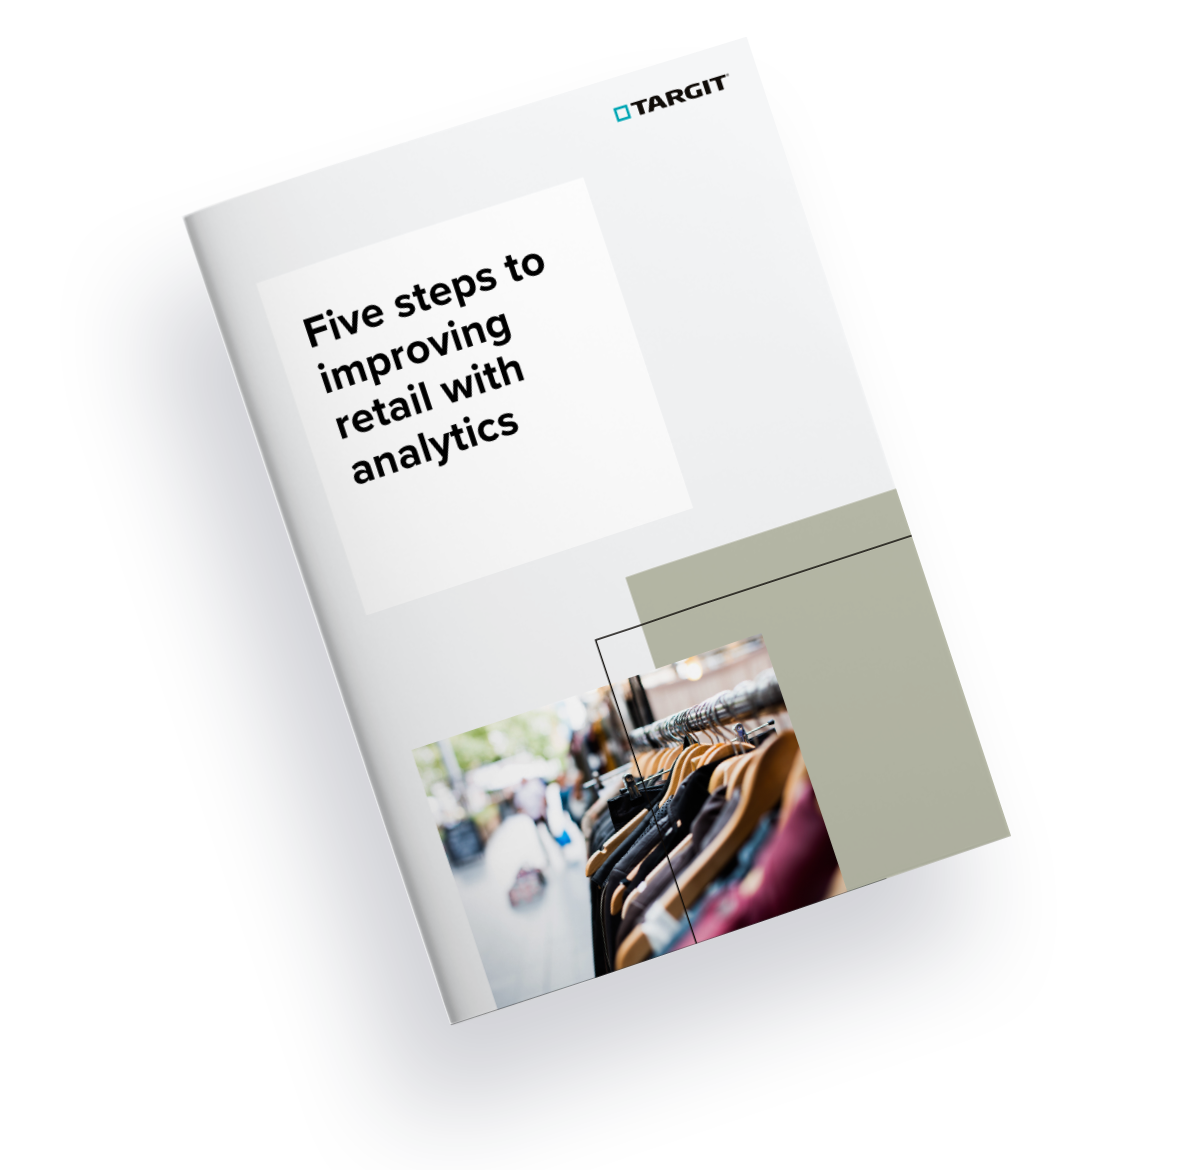 Five steps to improving retail with analytics cover